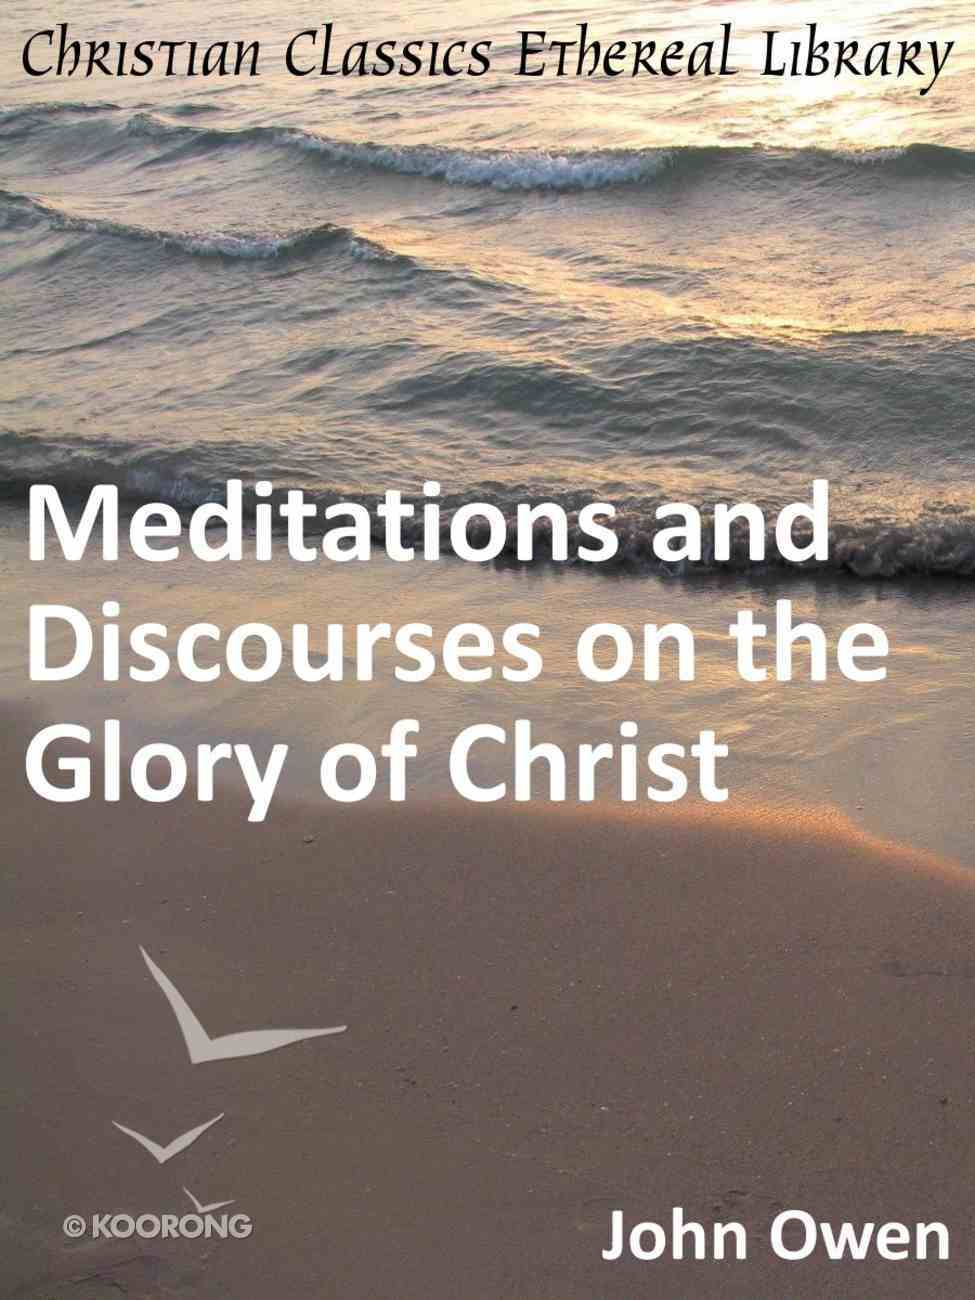 Meditations and Discourses on the Glory of Christ eBook